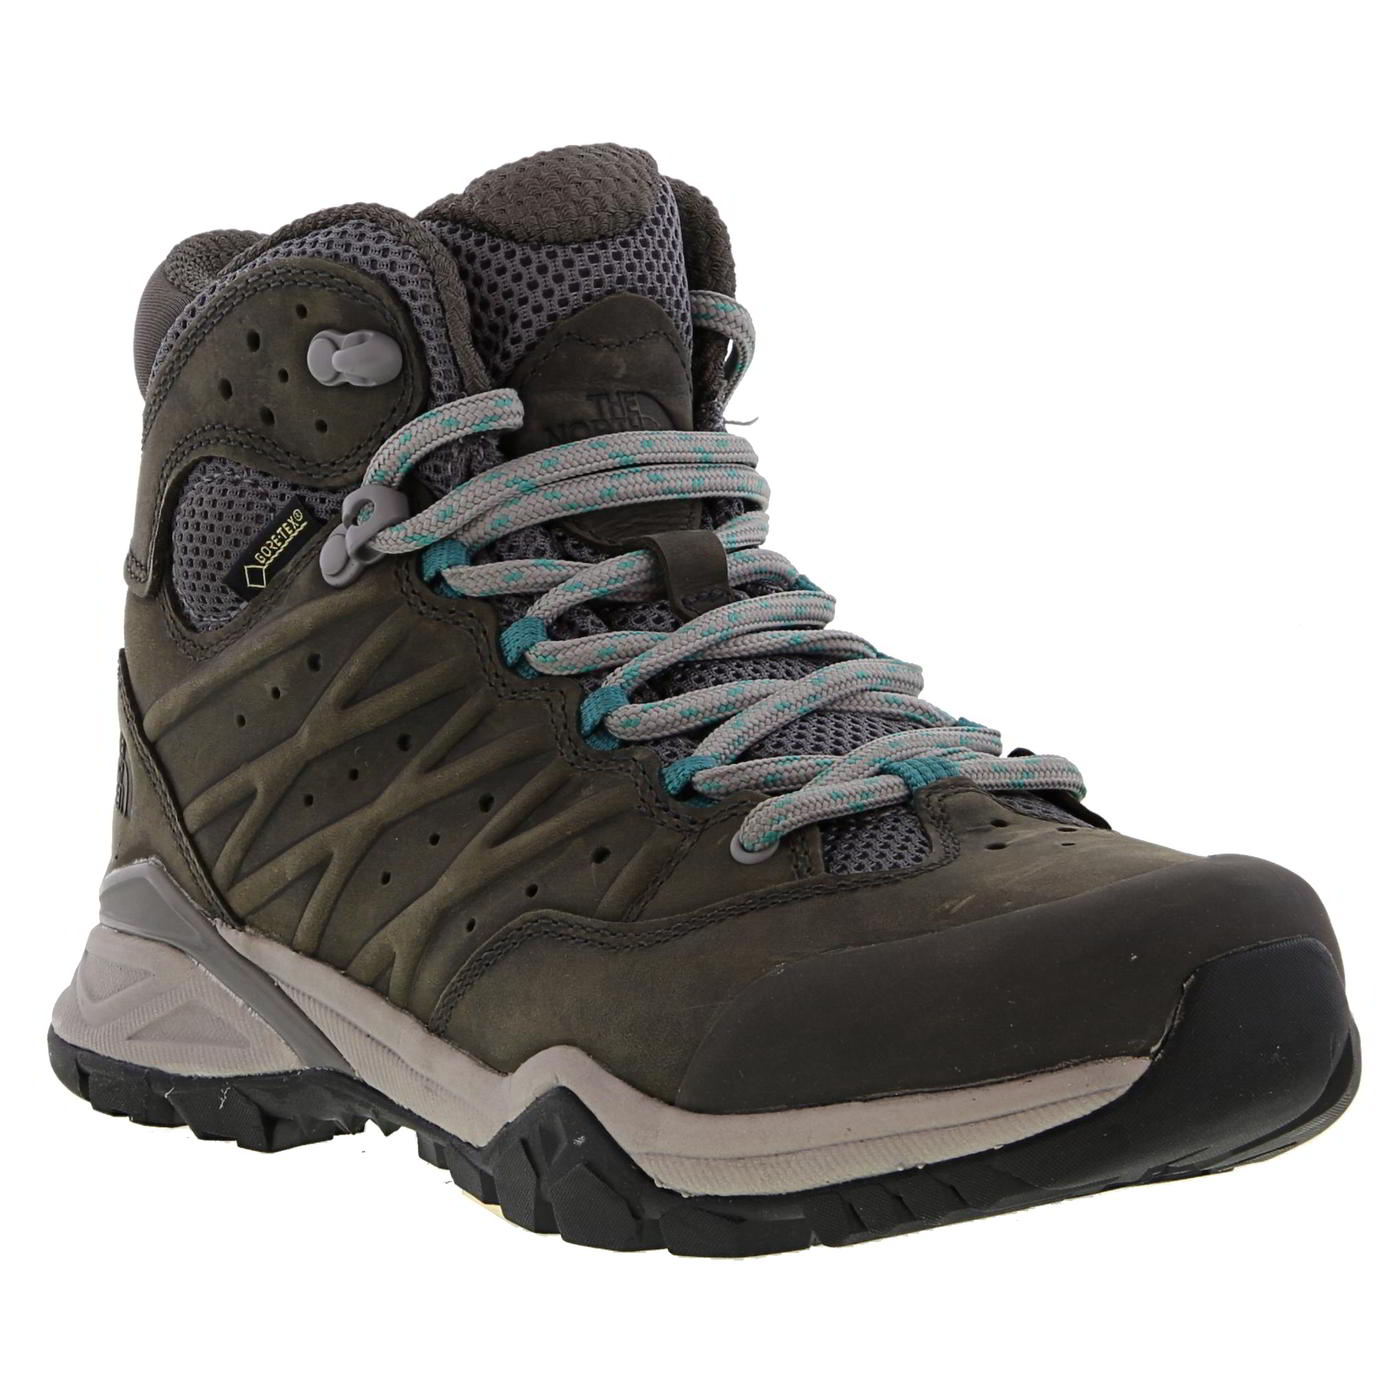 7c083a34fd Details about TNF The North Face Hedgehog Hike II Mid Gore-Tex Waterproof  Walking Boots 4-8